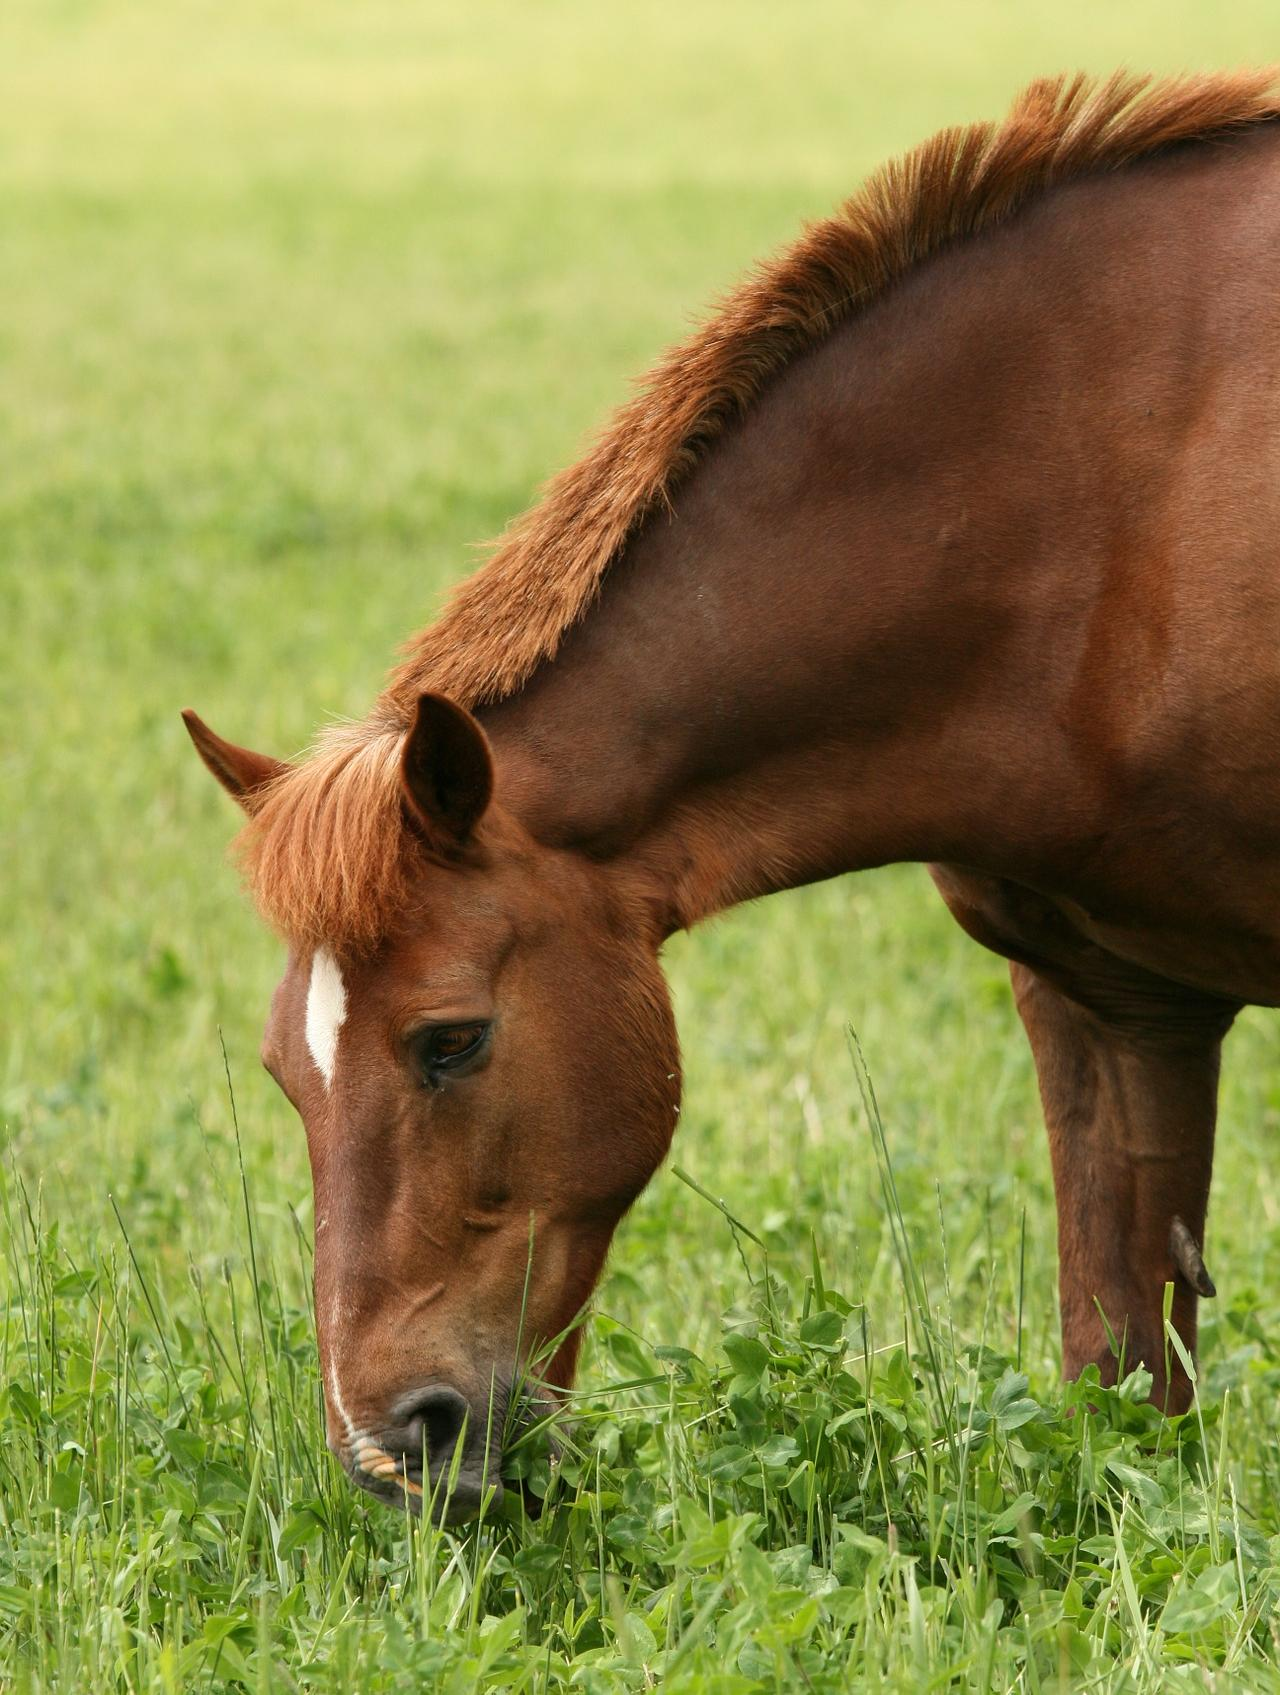 Equine Health Through Nutrient Specific Nutrition